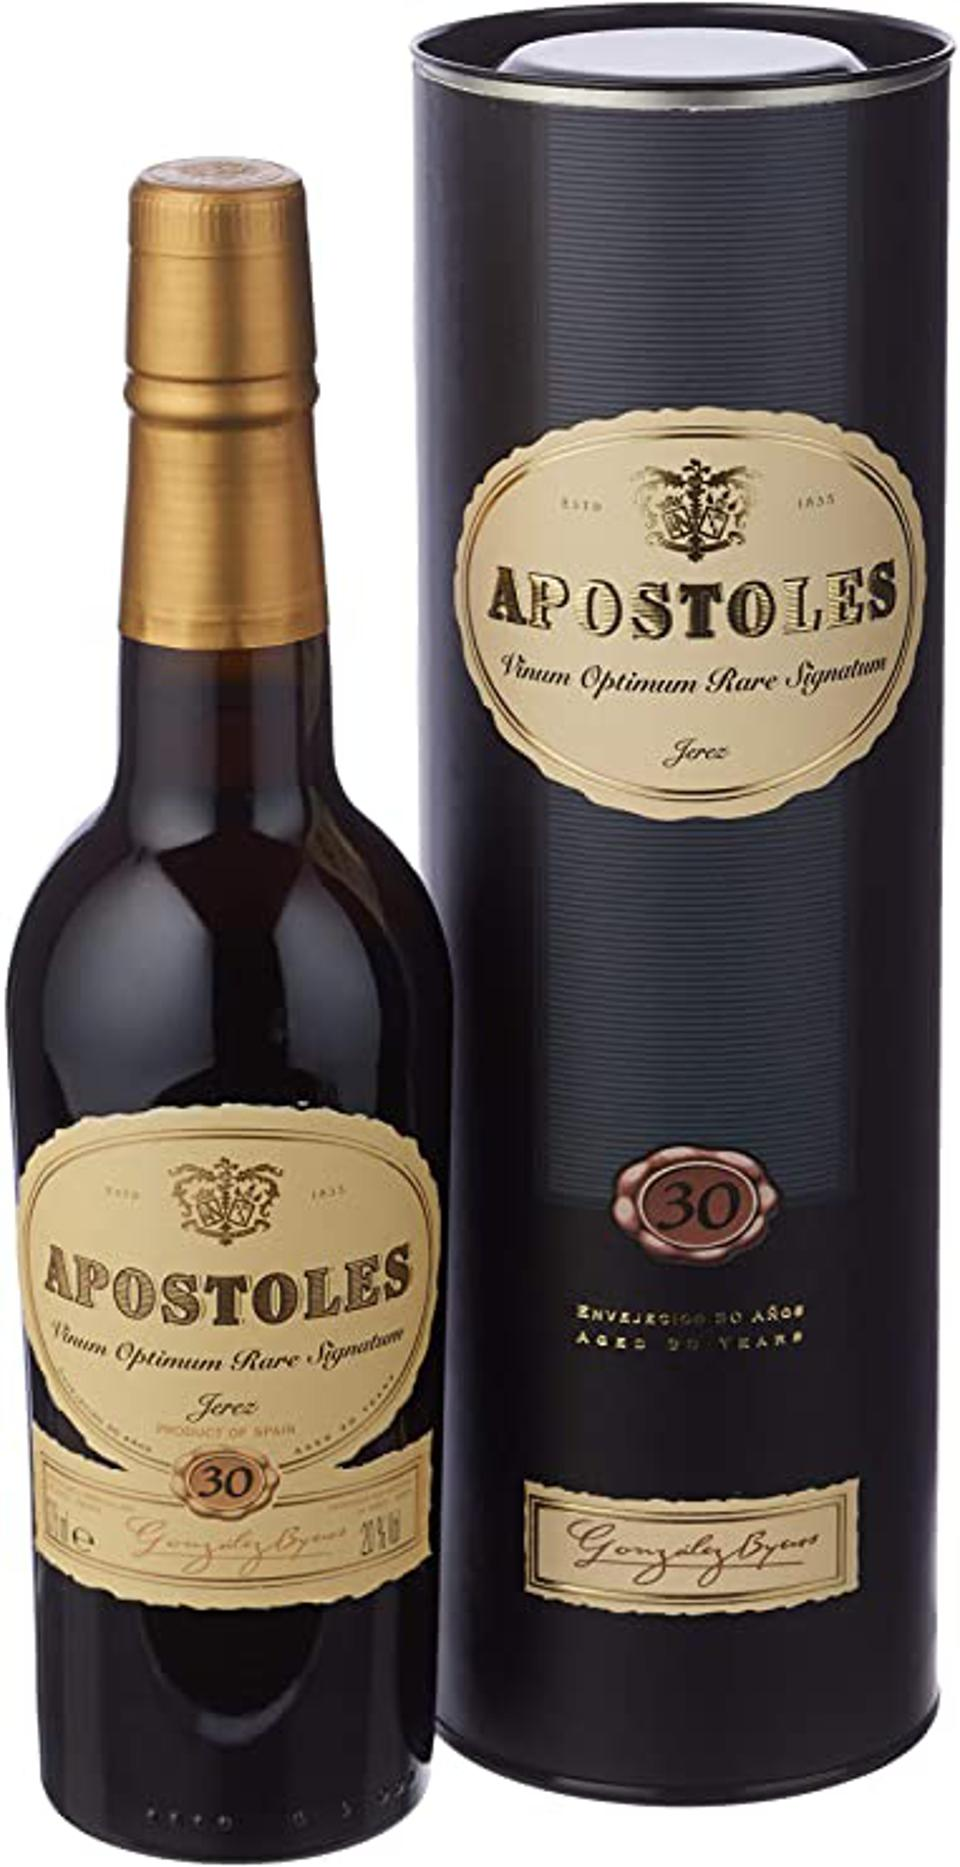 a bottle of Apostoles Sherry